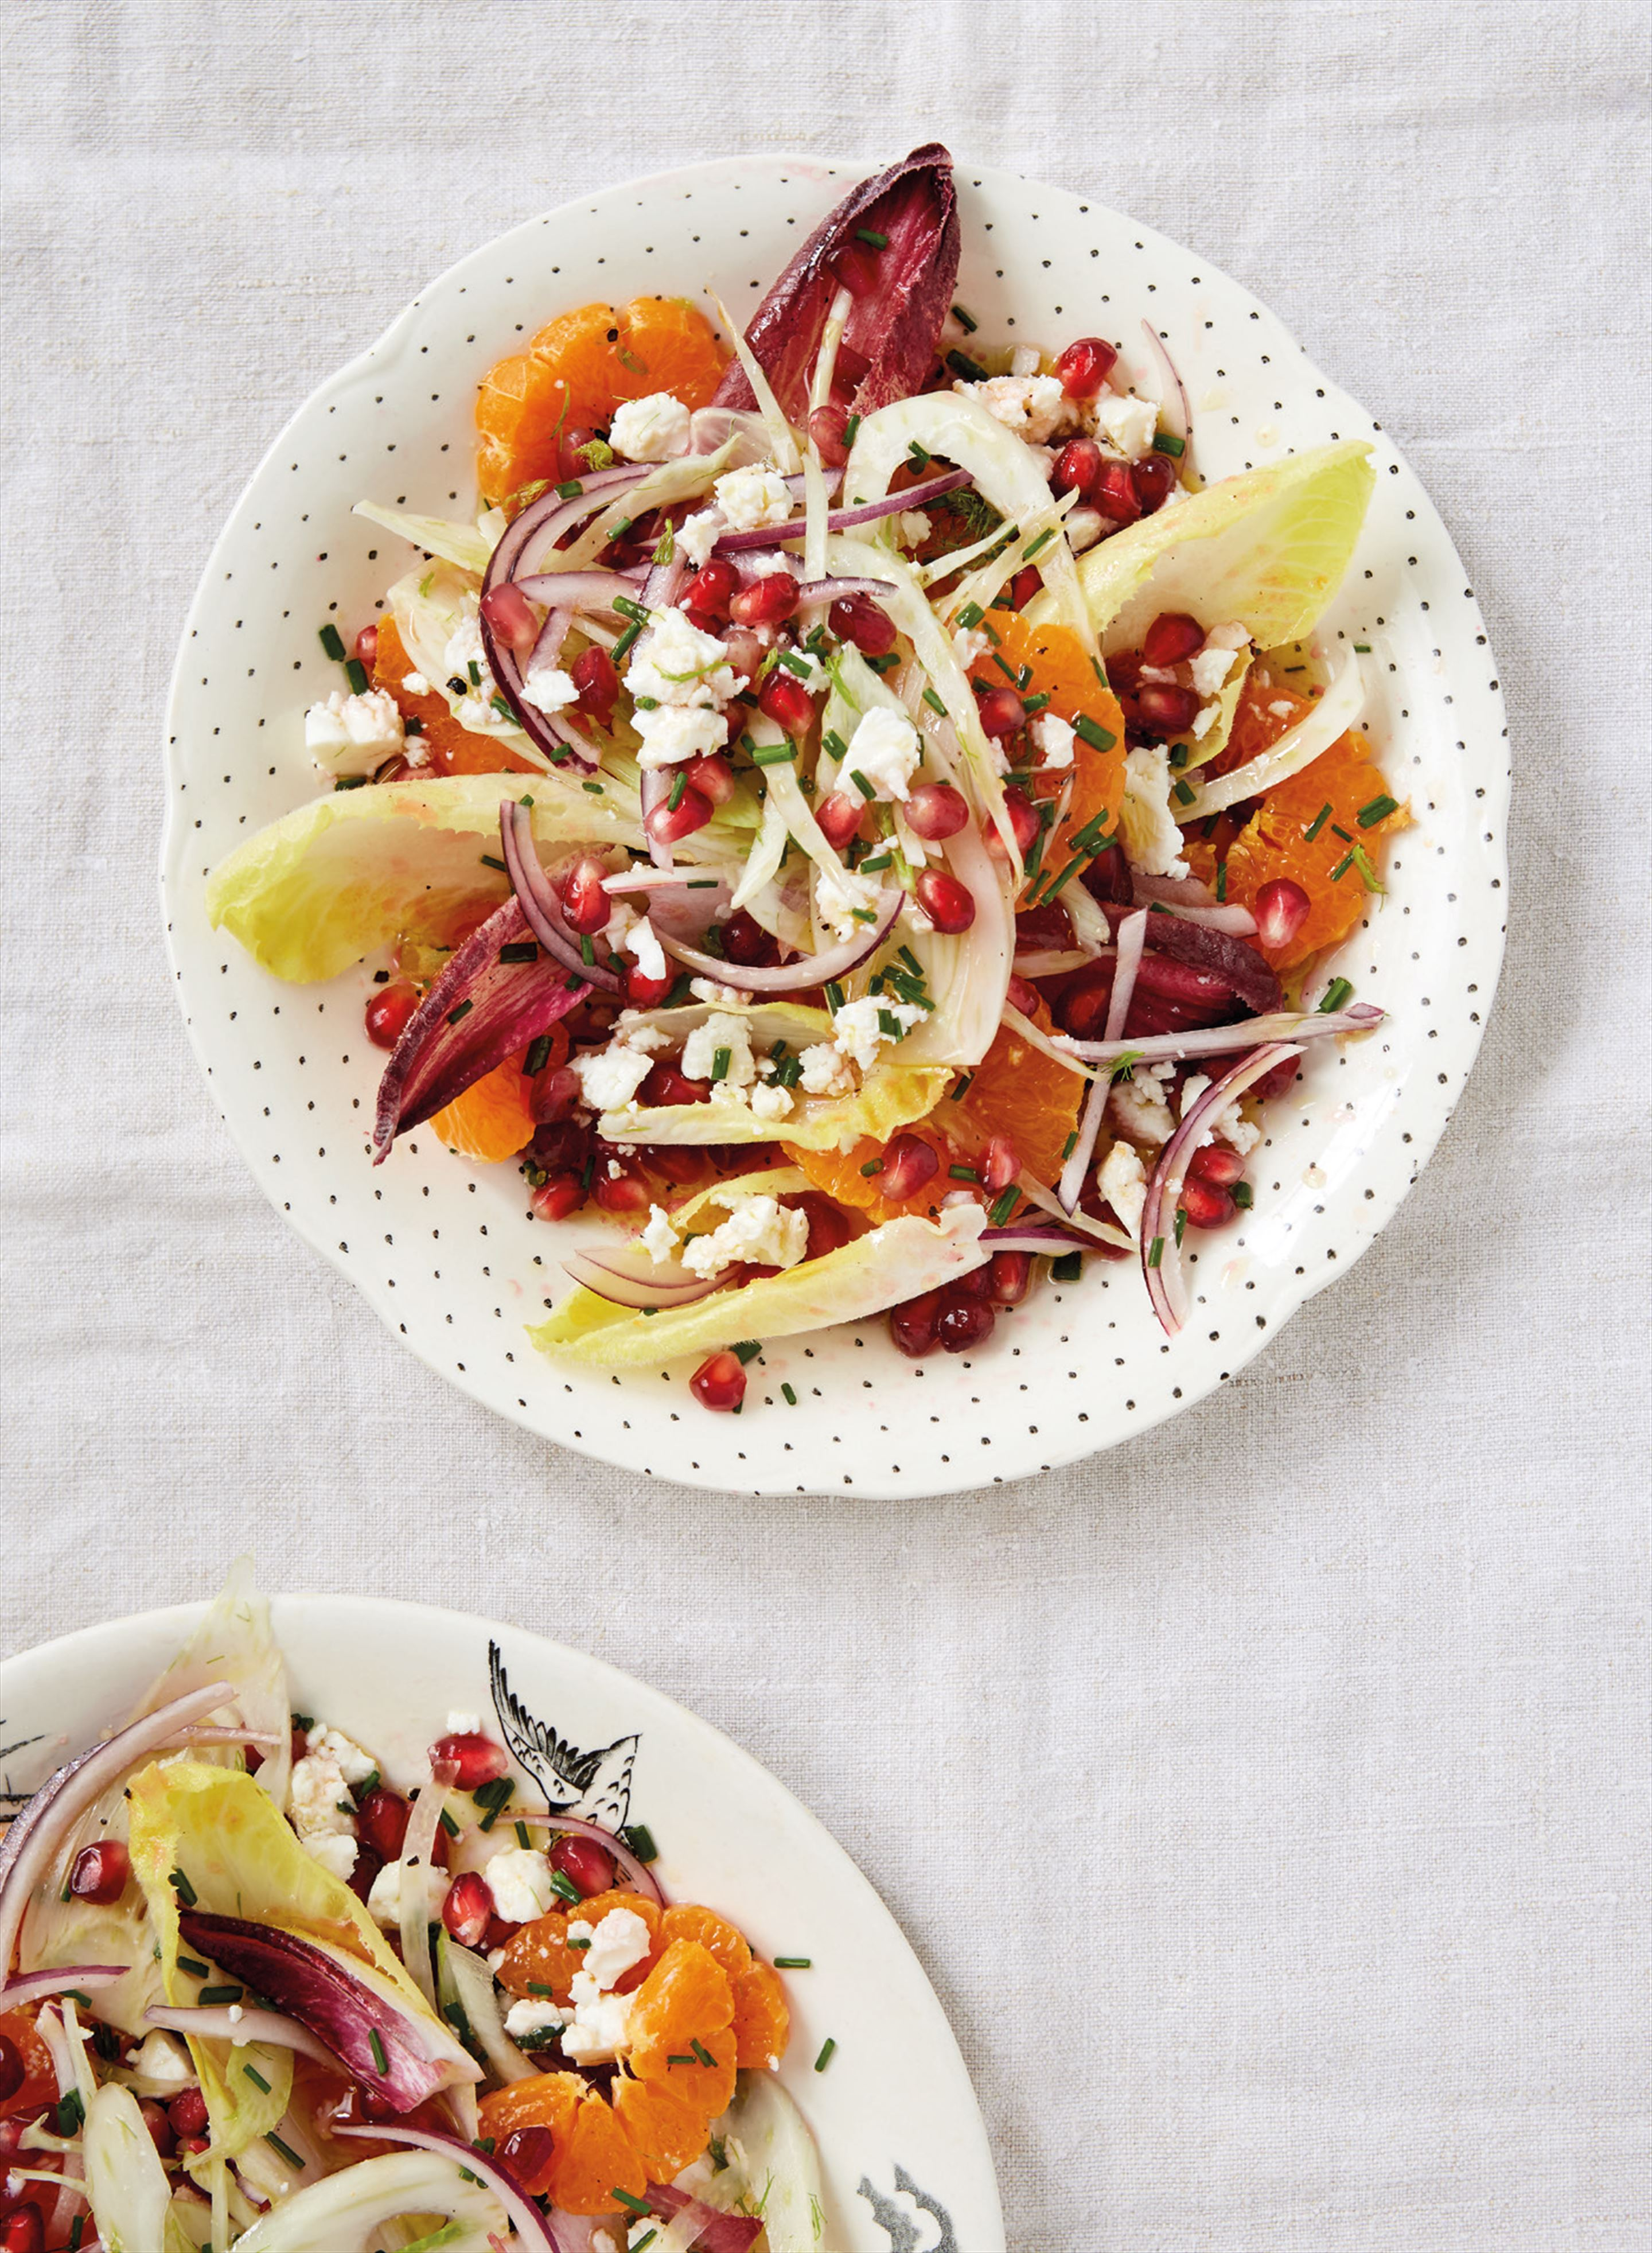 Satsuma, pomegranate, fennel and chicory salad with feta